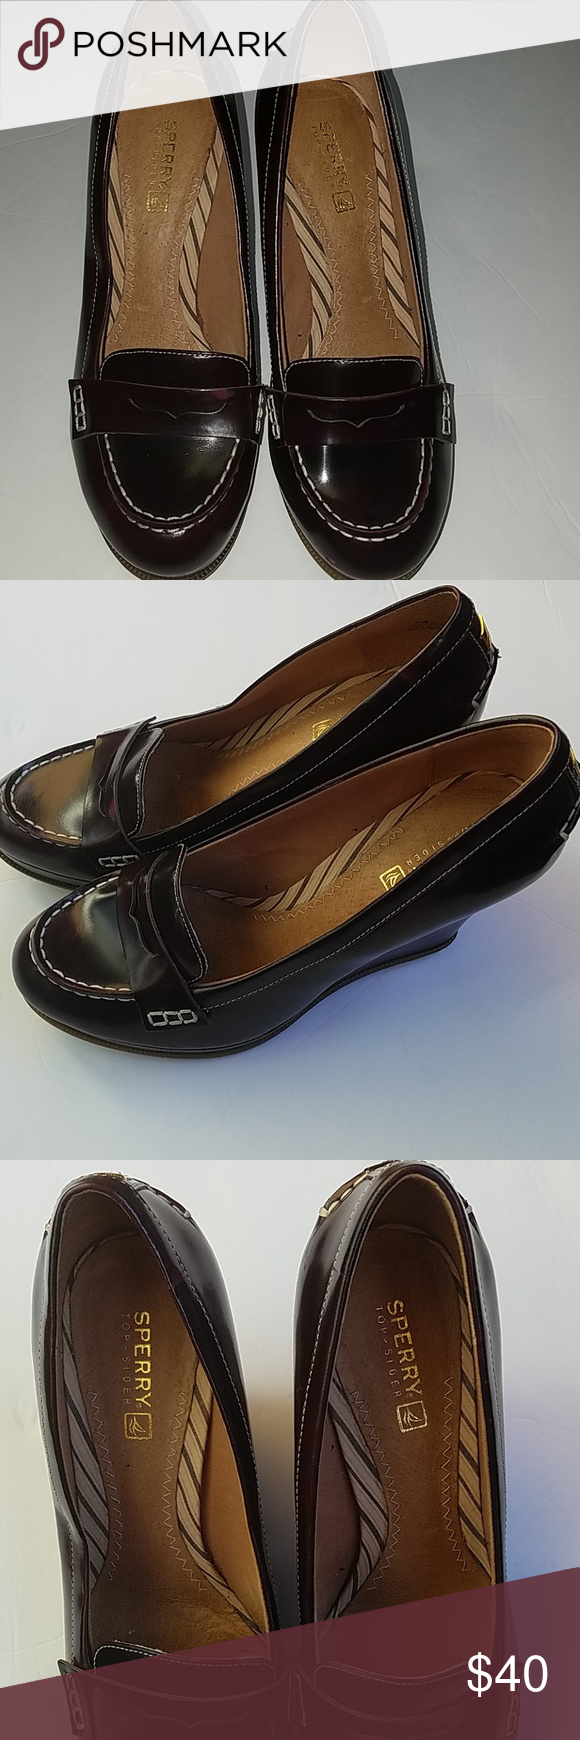 85b406cf031 Sperry top sider penny loafer wedge Ladies burgundy Sperry Top Sider